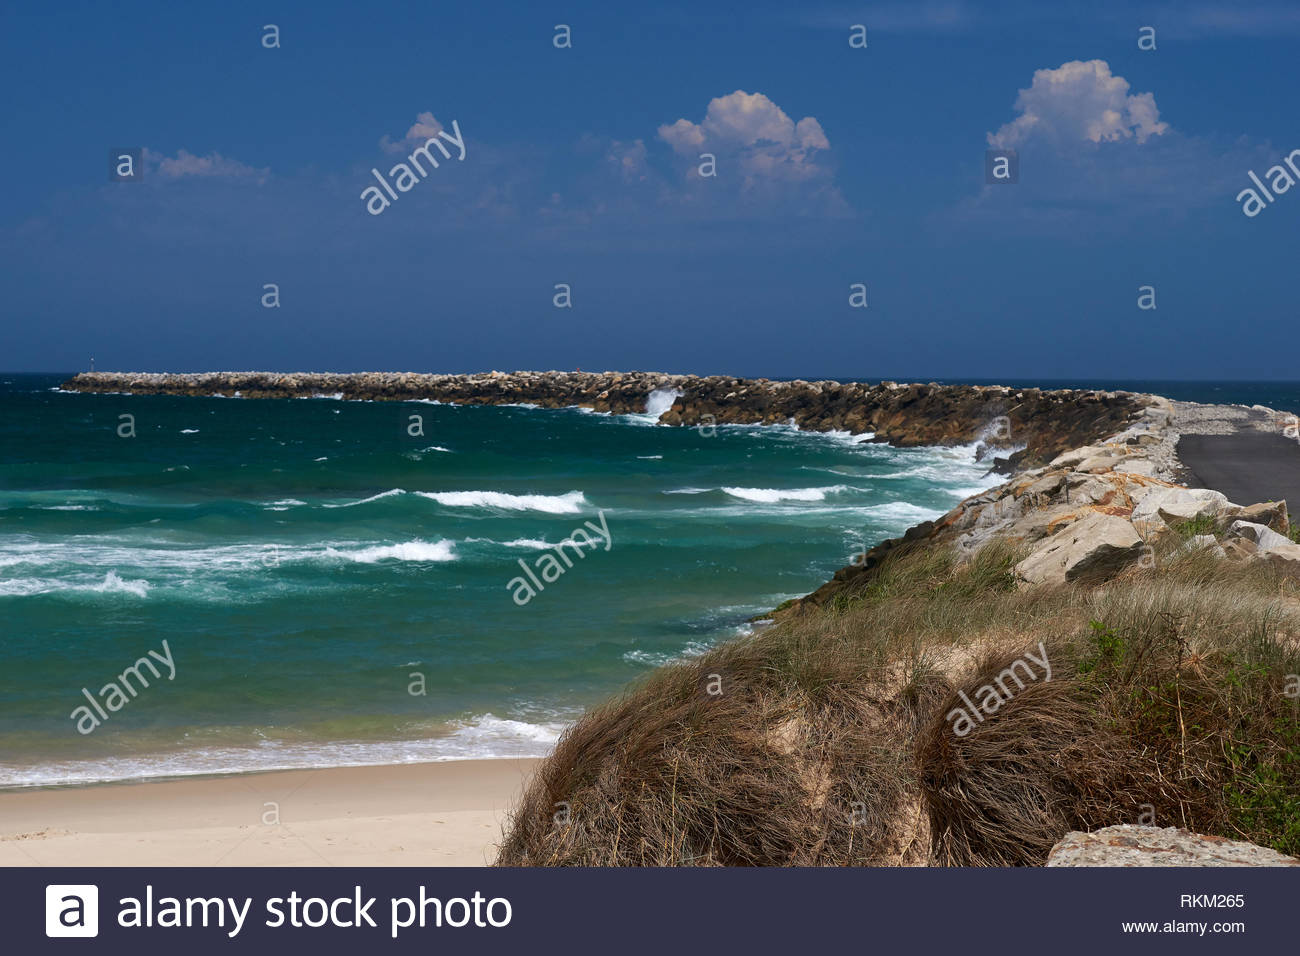 The long break wall - the 'North Wall' - at Iluka; protecting the entrance to the Clarence River. The Pacific Ocean, blue skies with clouds as well. - Stock Image